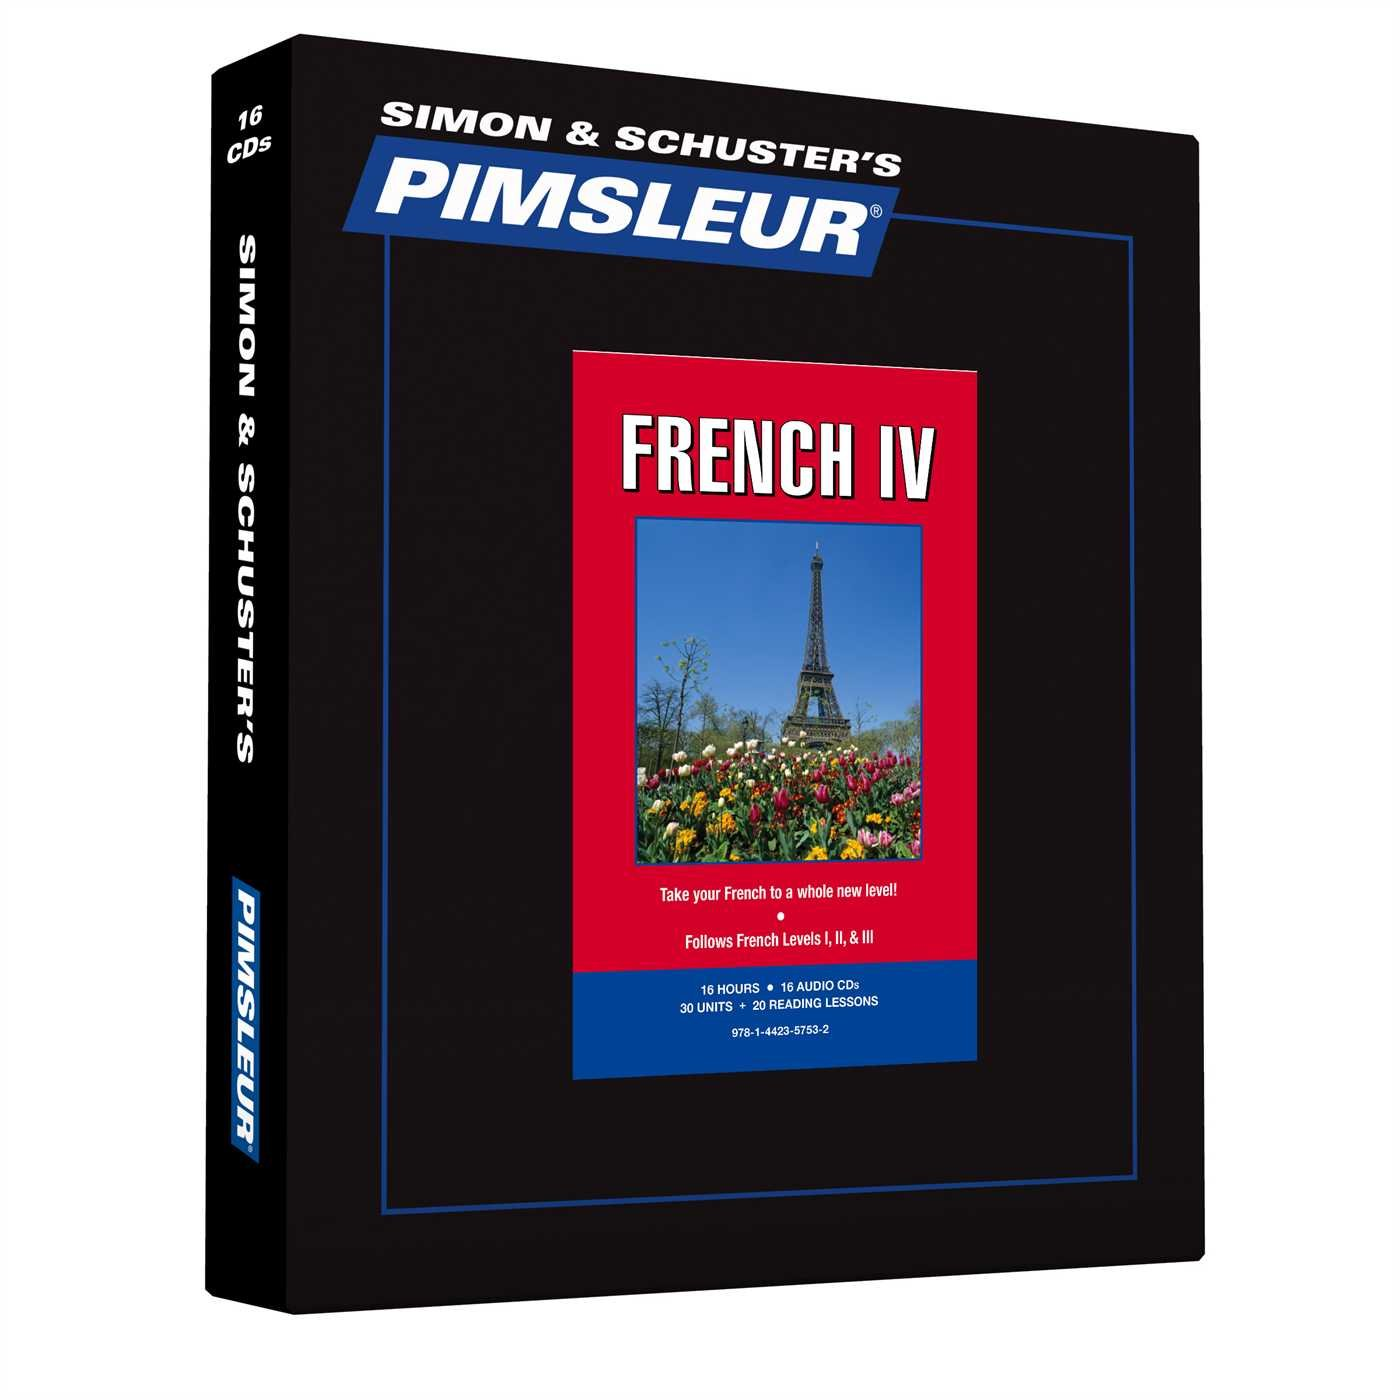 Pimsleur French Level 4 CD: Learn to Speak and Understand French with Pimsleur Language Programs (Comprehensive) by Brand: Pimsleur